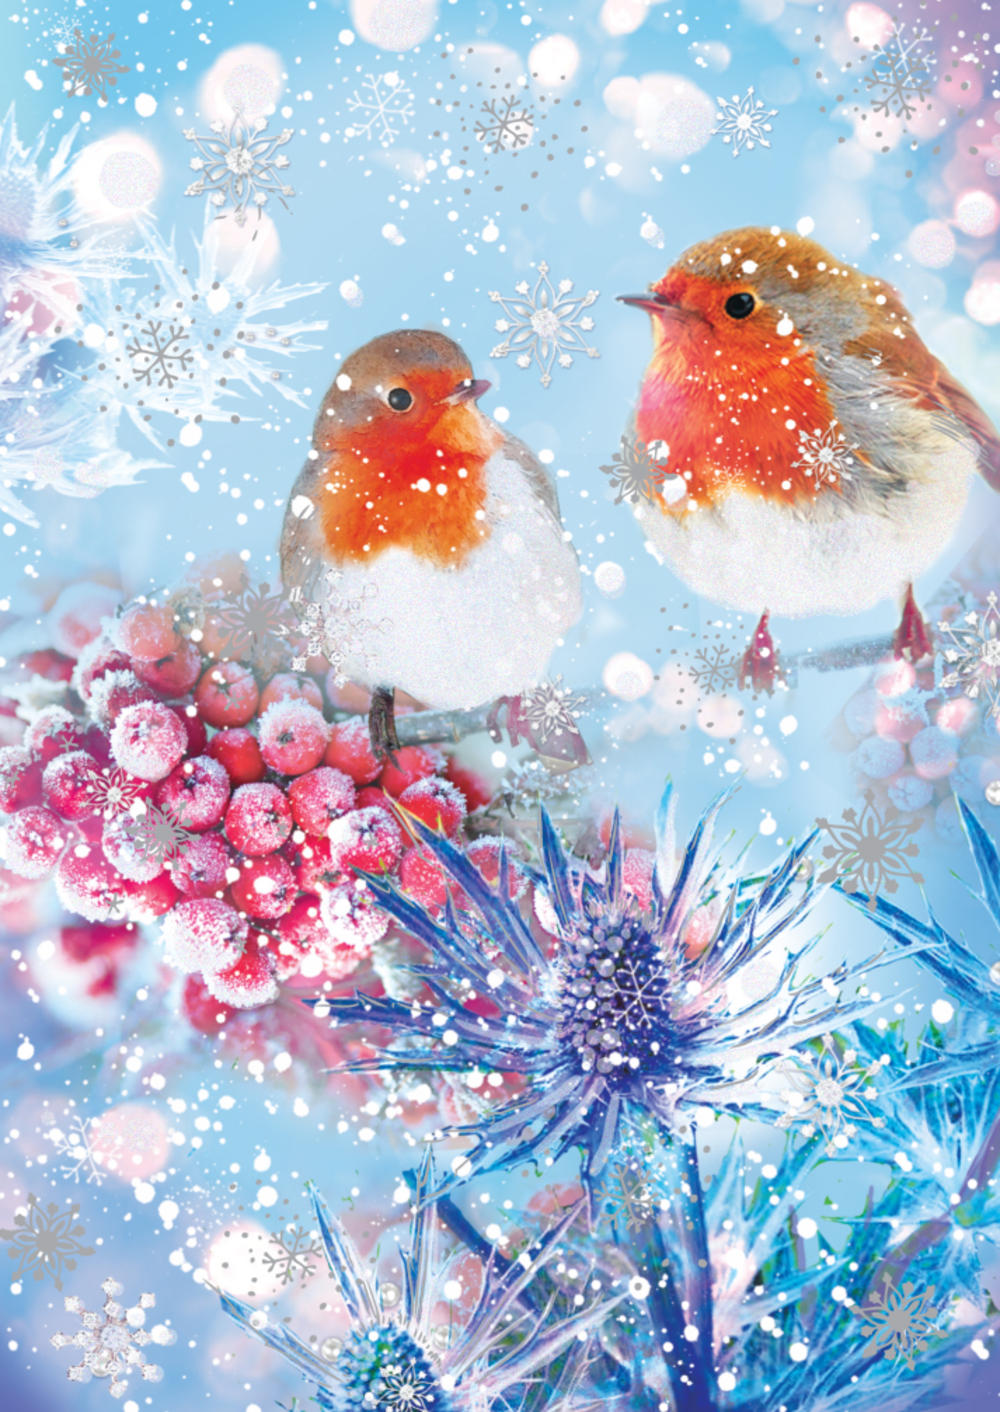 Pack of 5 Red Robin Traditional Christmas Cards